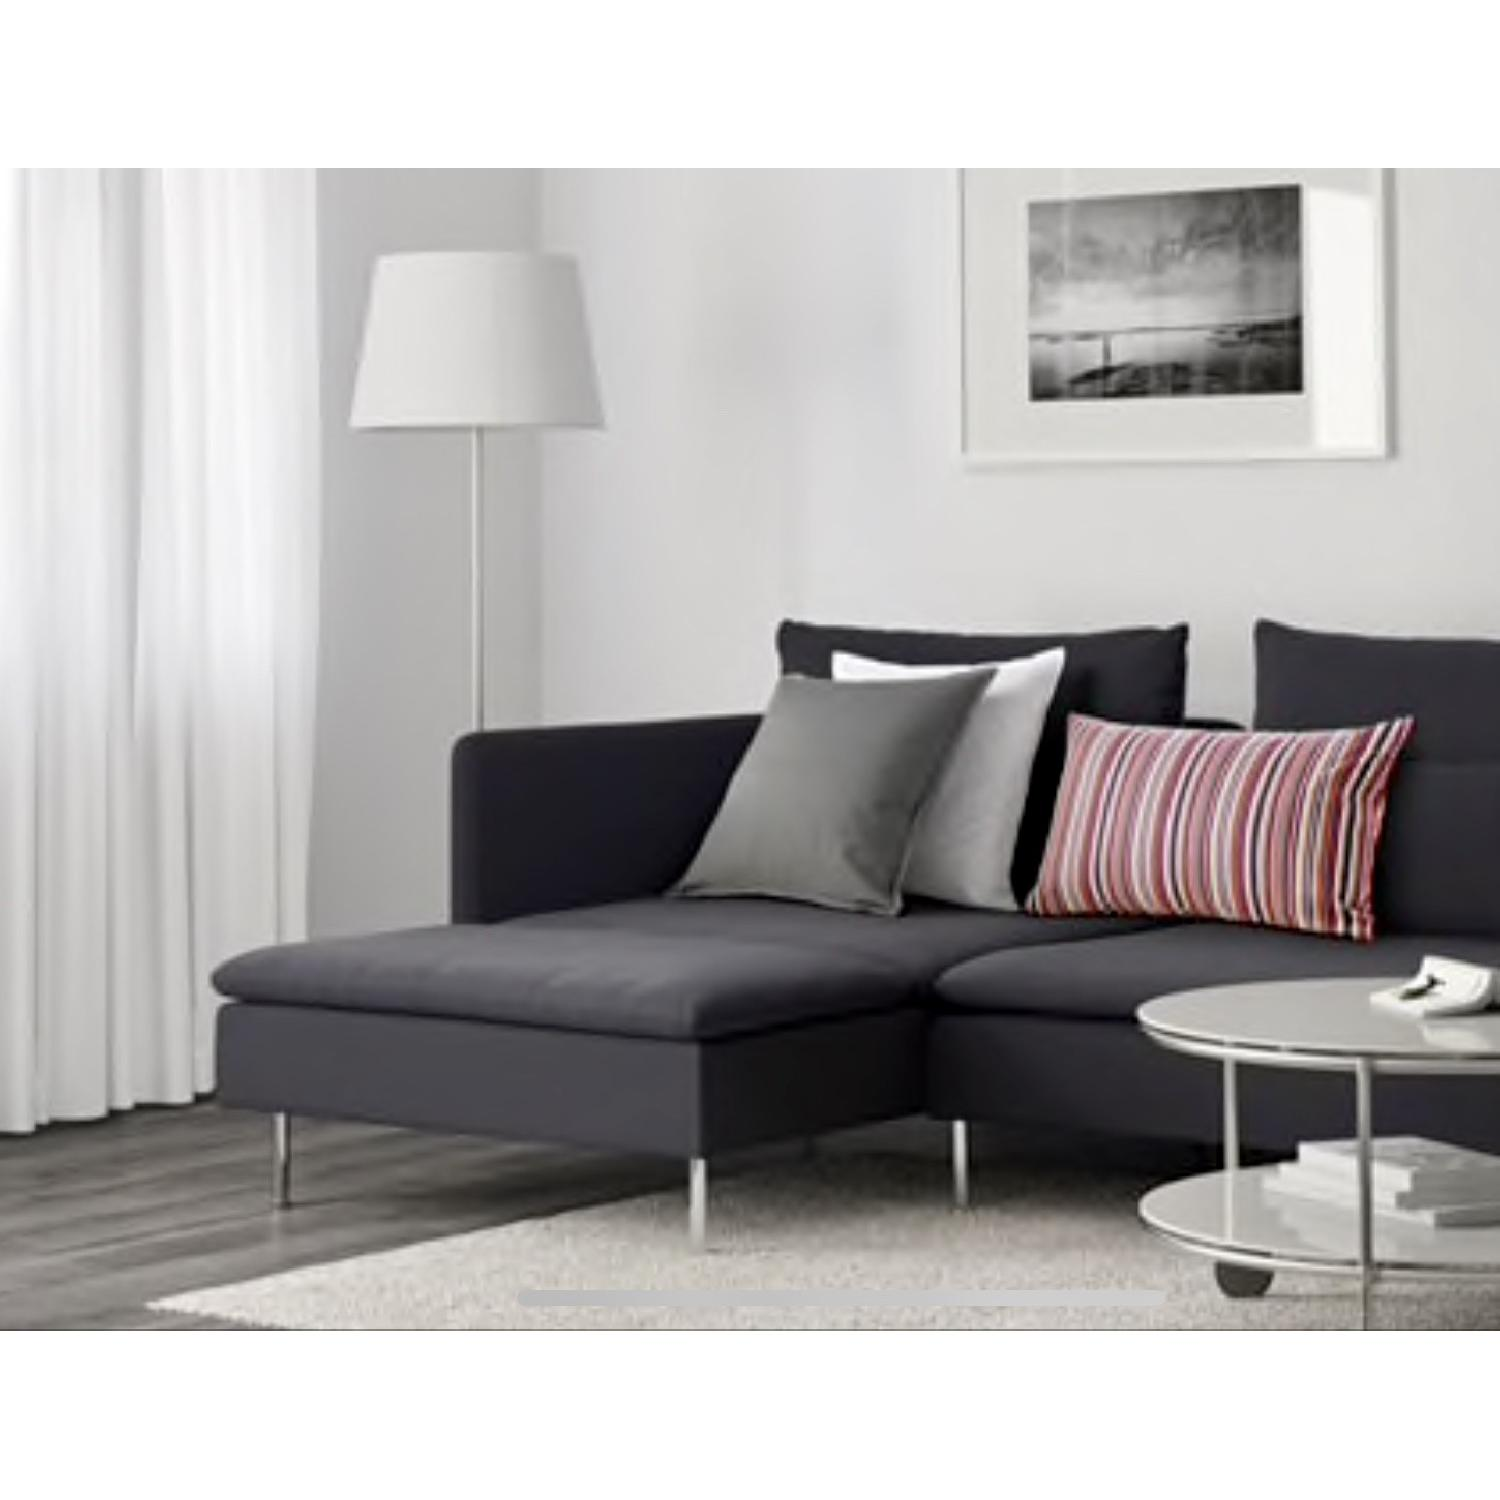 ... Ikea Soderhamn Grey Sectional Sofa W/ Extended Left Chaise 4